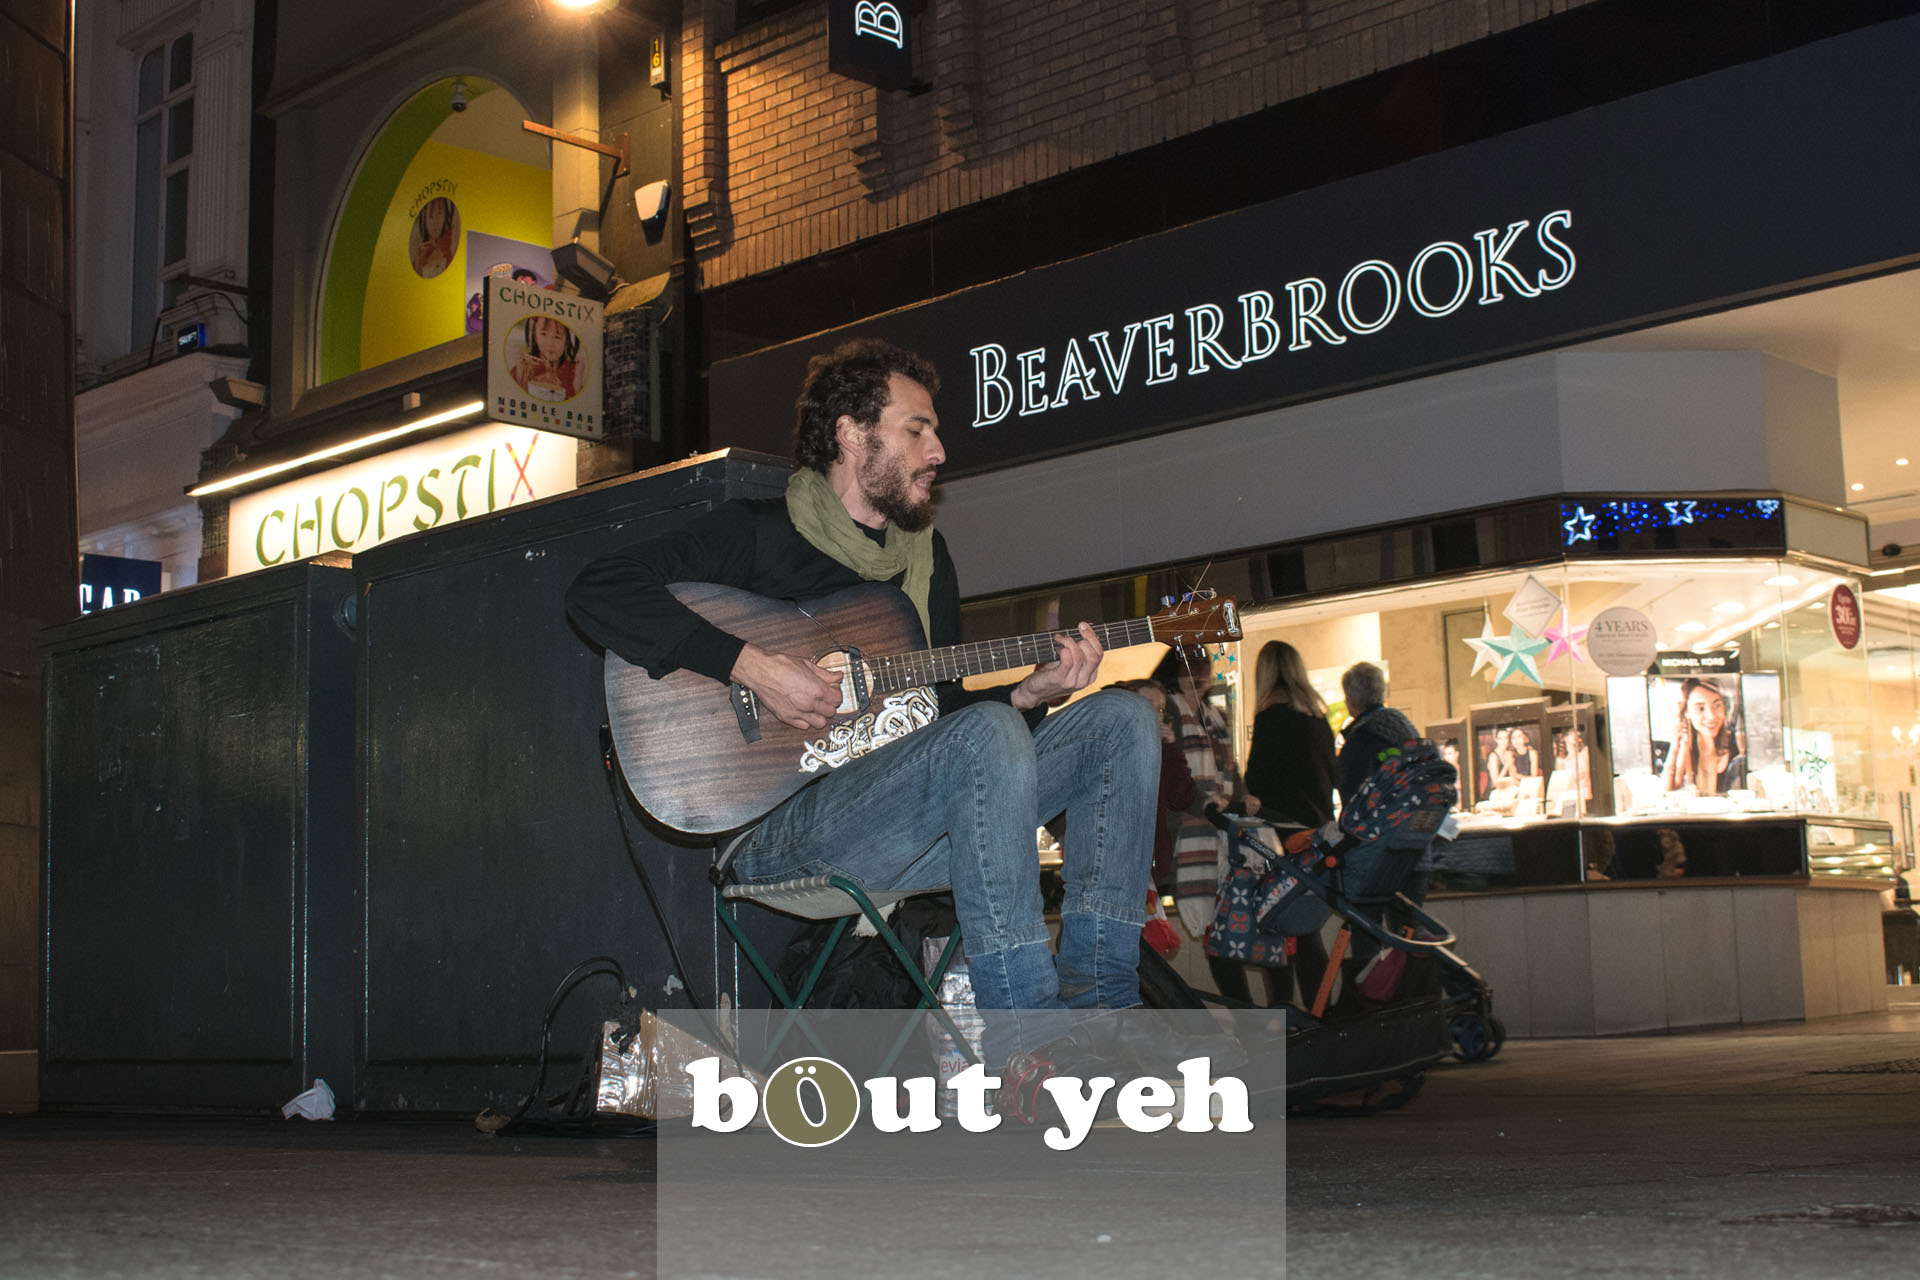 Australian busker playing guitar in Donegal Place, Belfast - bout yeh photographers Belfast photo 3392.